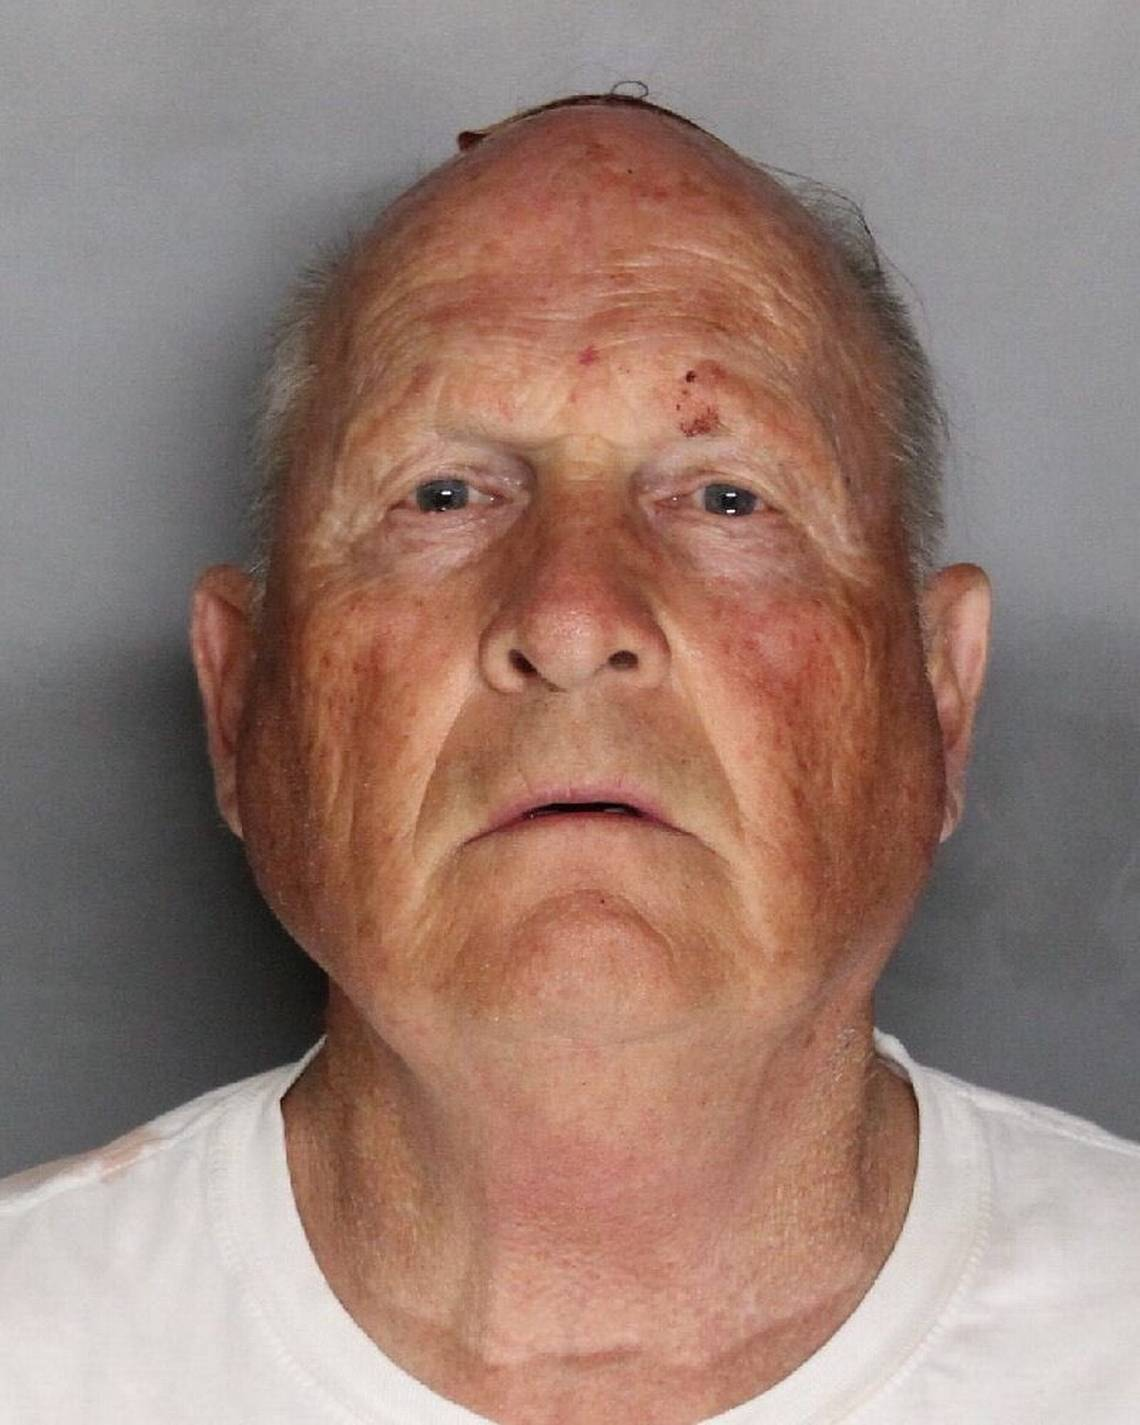 Suspect in Infamous Serial Rapes and Murders Captured After 40 Years of Investigation